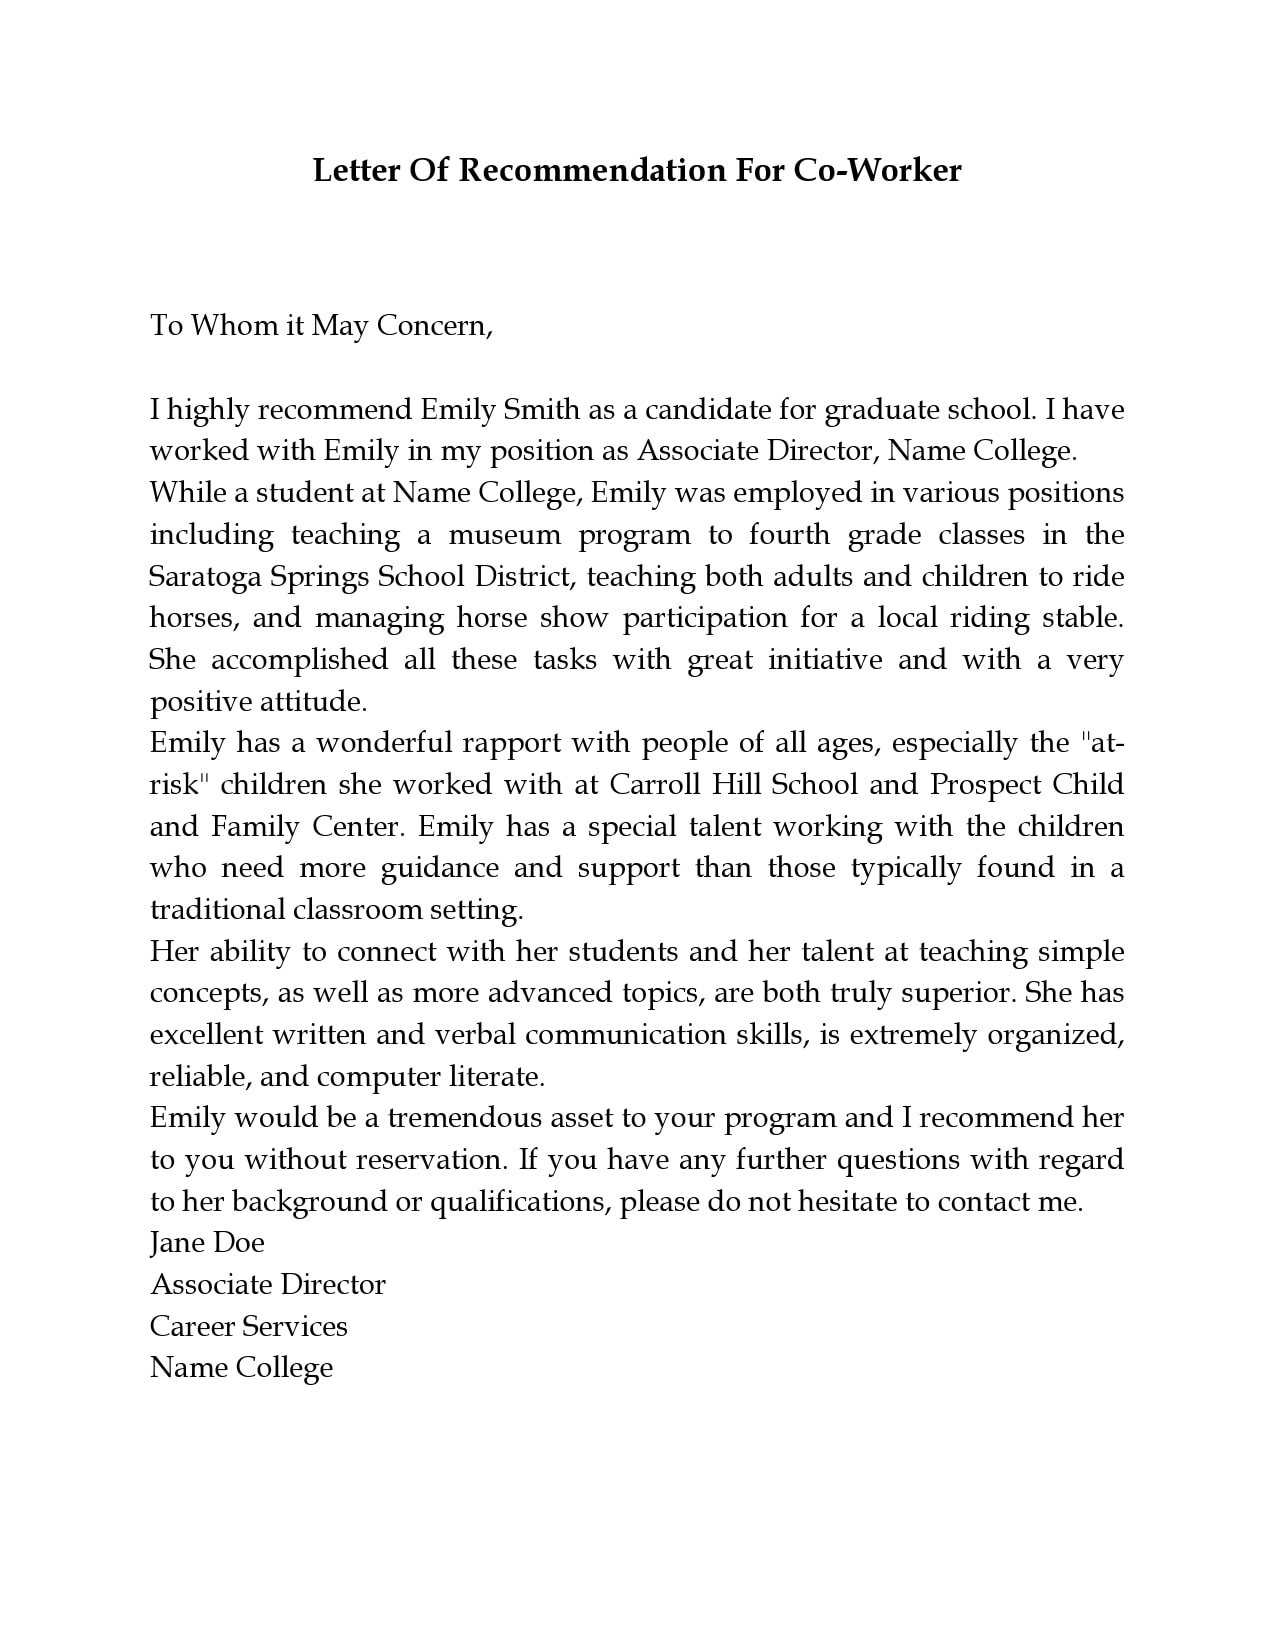 letter of recommendation for coworker 04